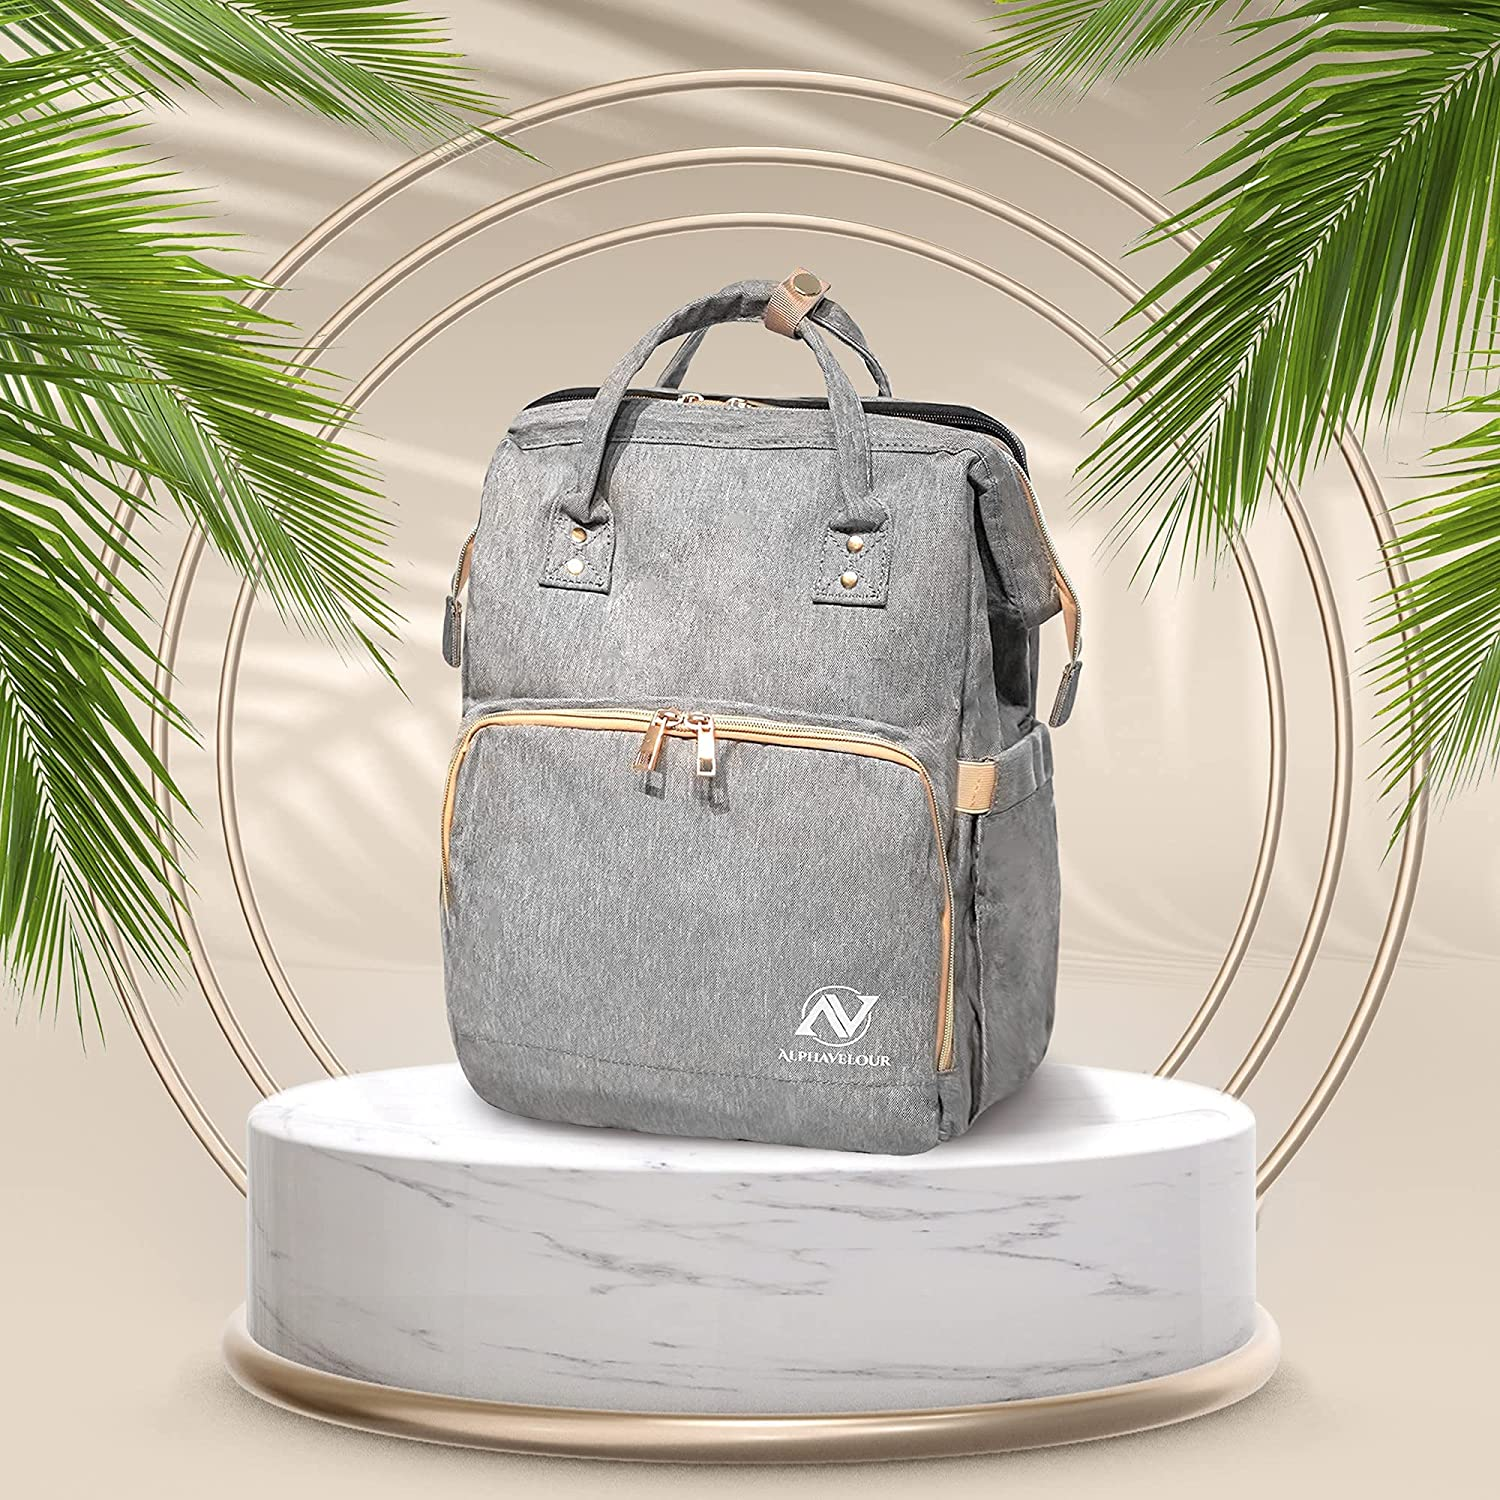 Diaper Bag Backpack with Changing Station, Free Water Bottle Holder (Grey), 3 in 1 Nappy Bag Changing Station, Travel Baby Diaper Backpack with Crib